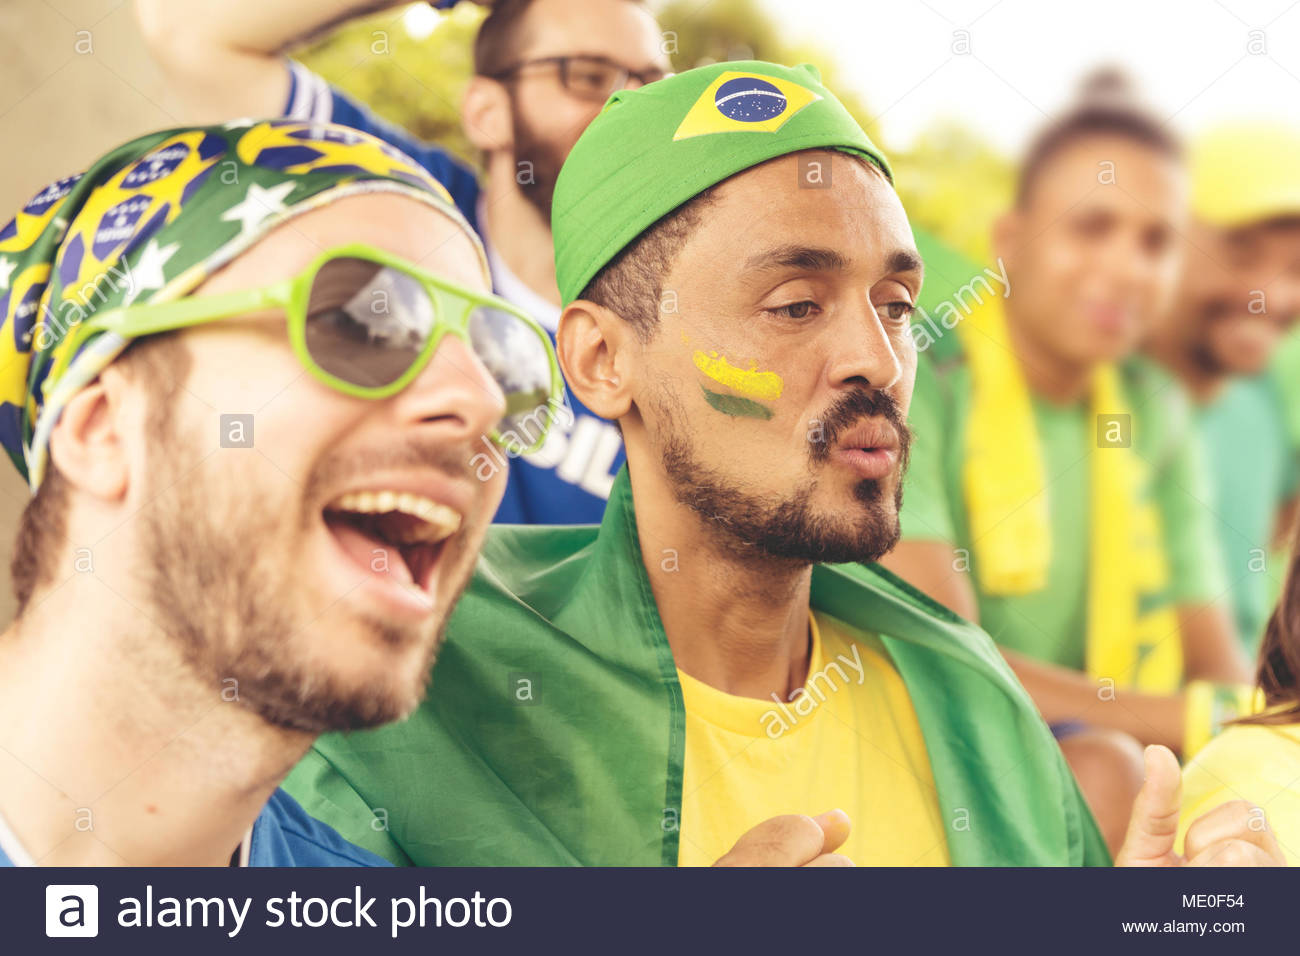 Group of fans cheer for brazilian team on stadium bleachers. Emotions portrait. - Stock Image